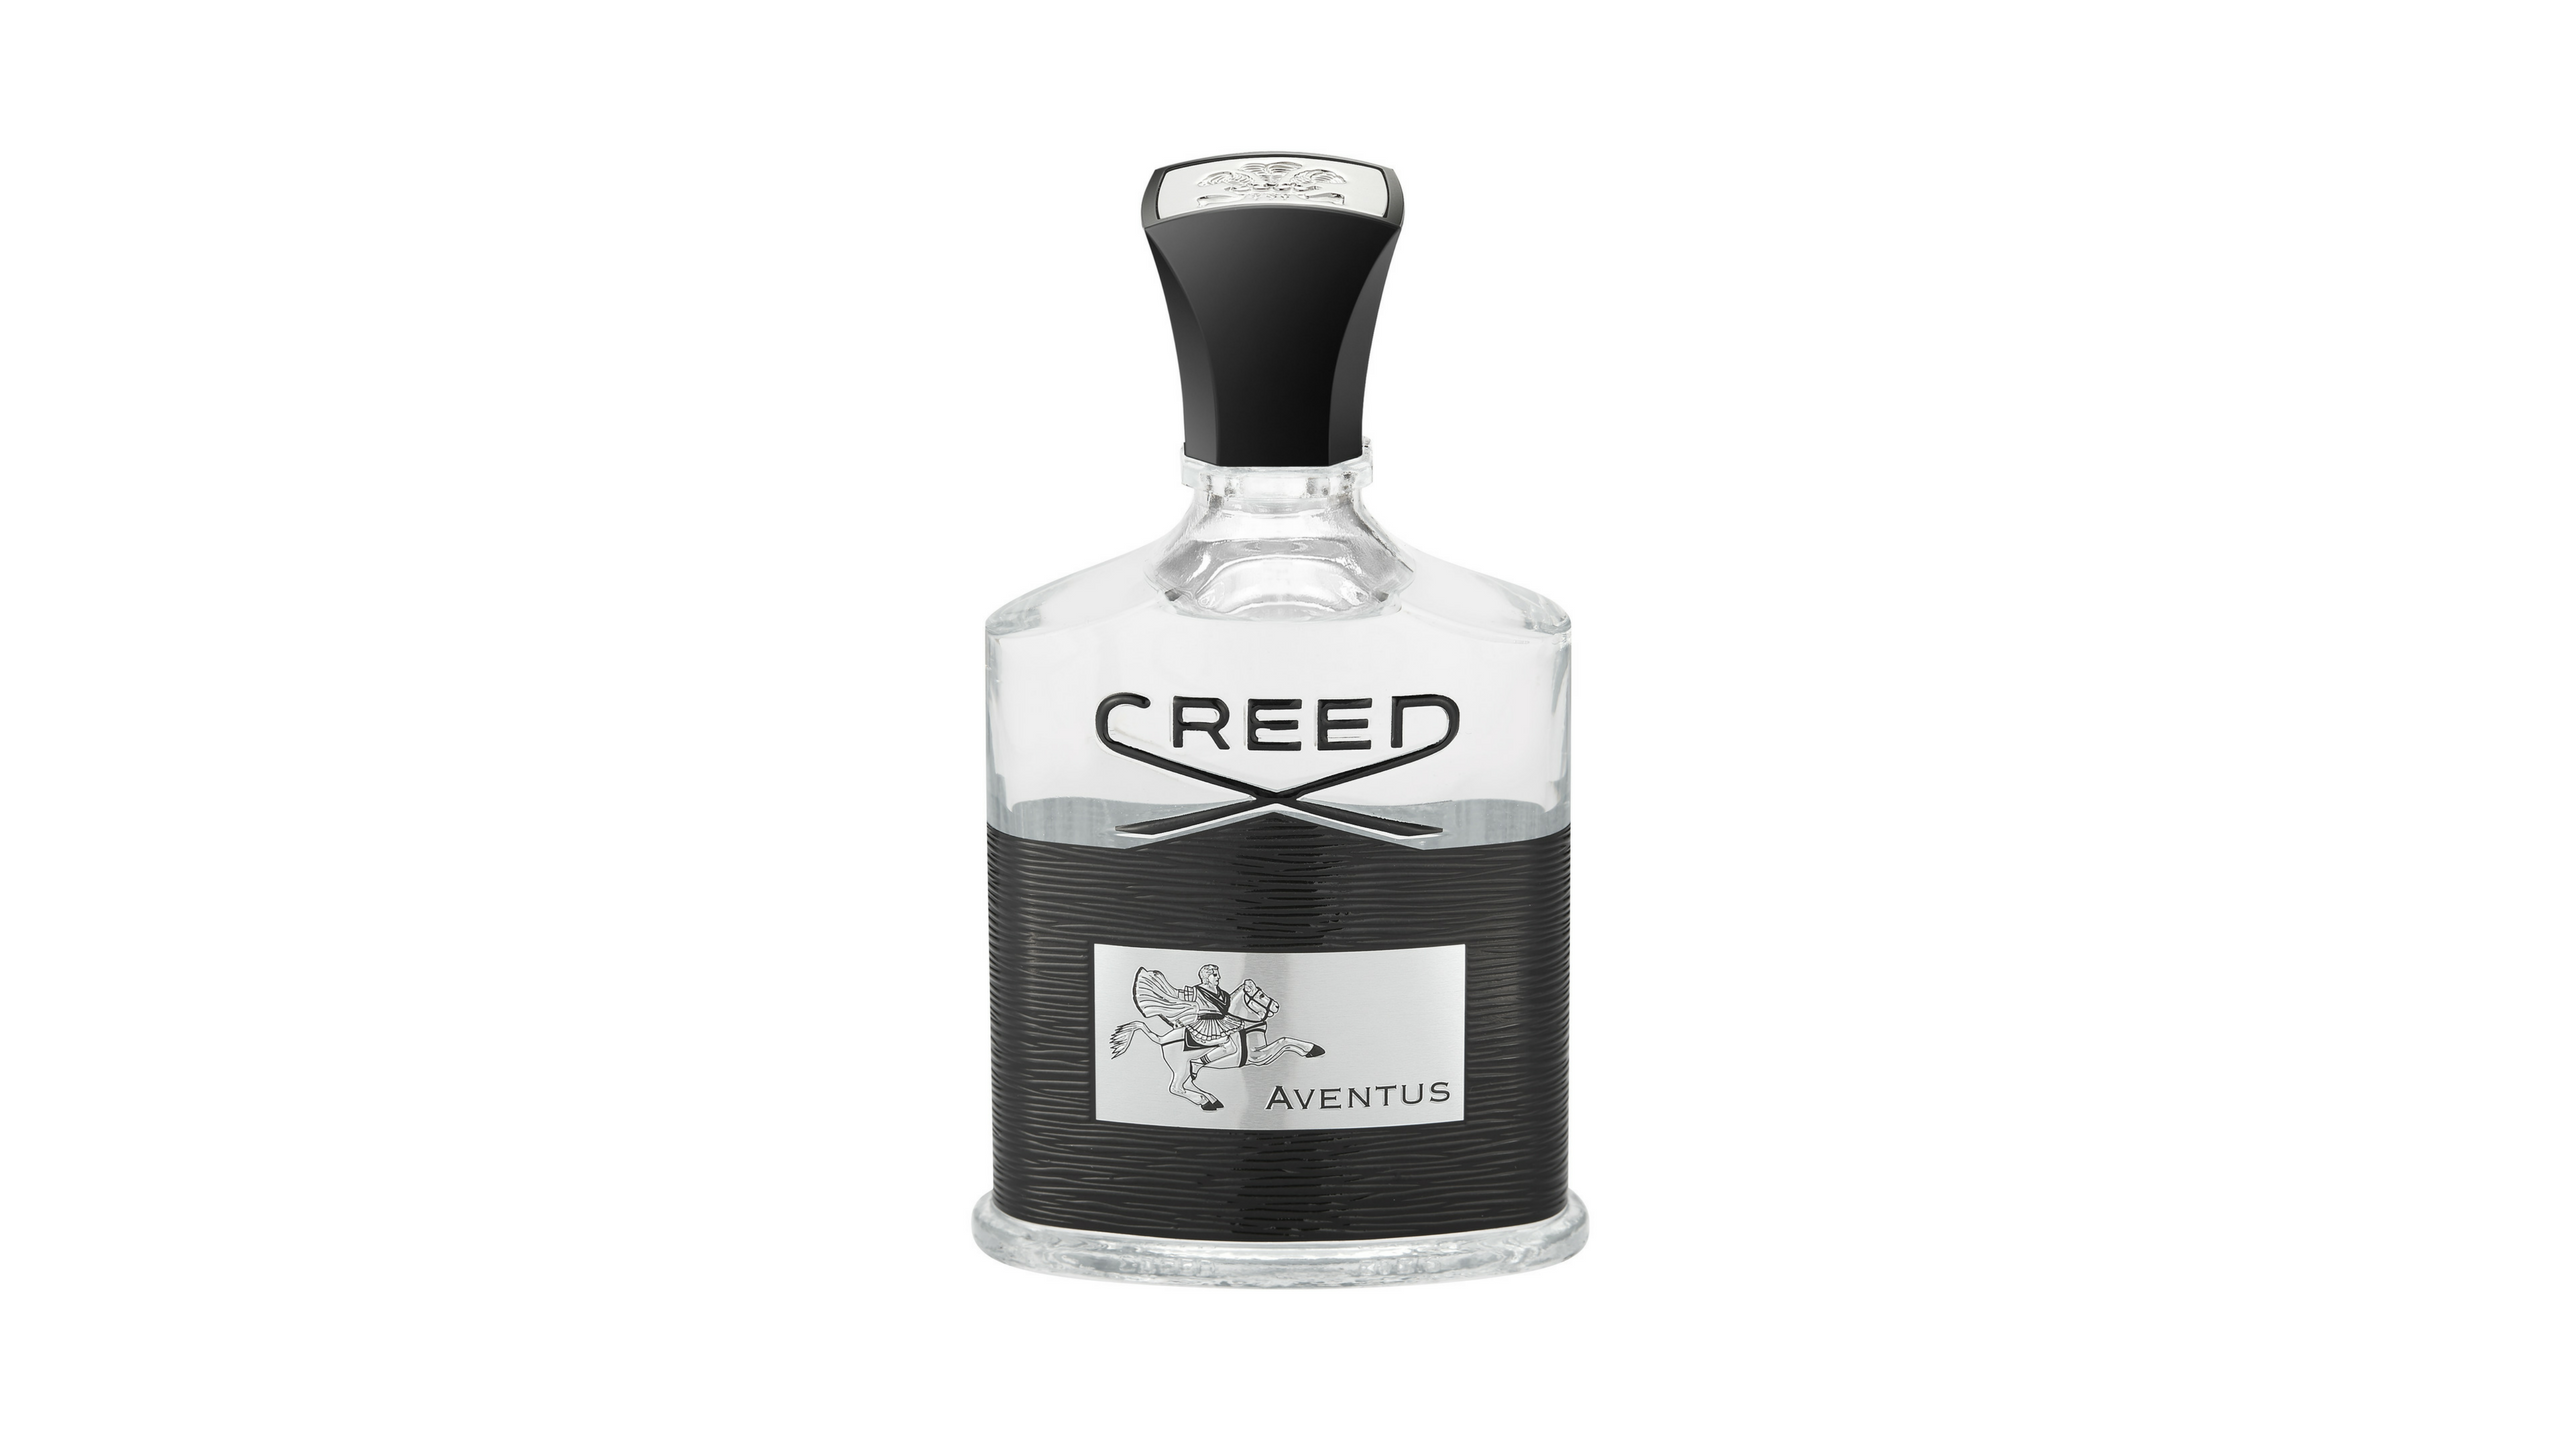 aventus creed best spring and summer fragrances for guys guide